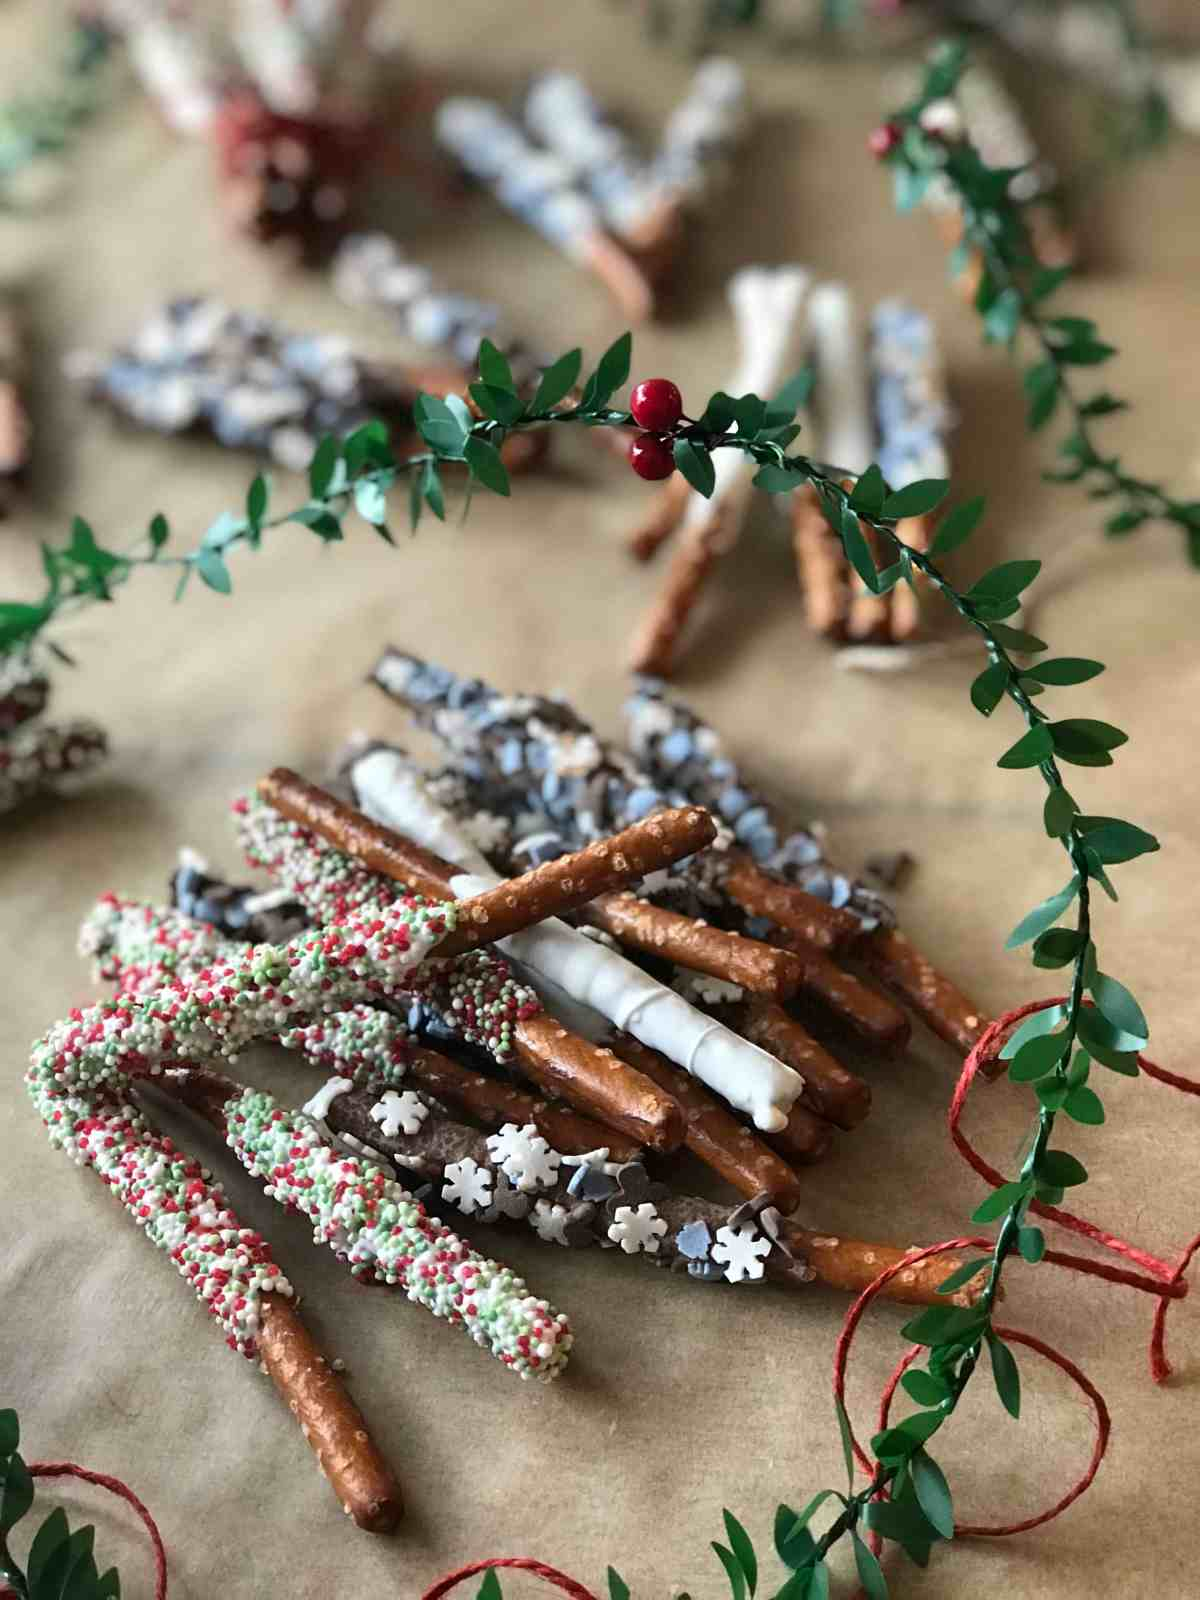 Edible Christmas Gifts: Candy Pretzel Rods